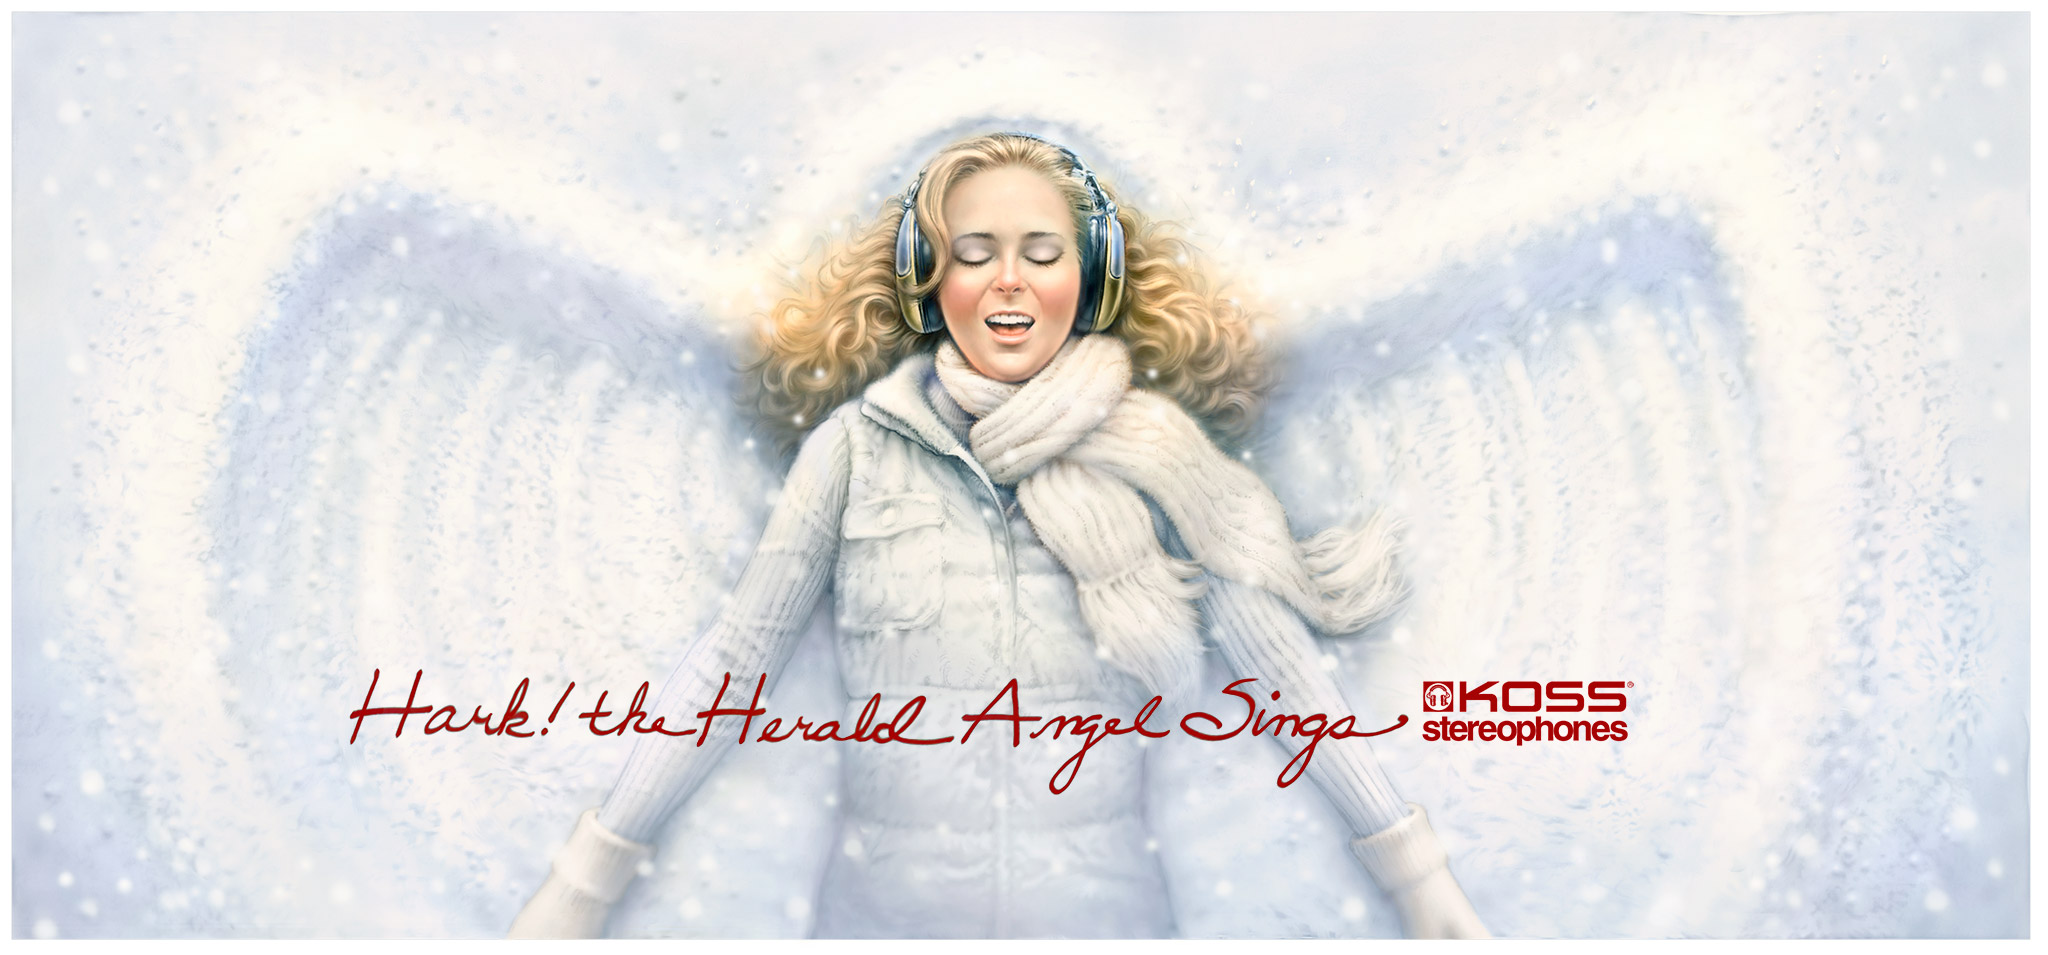 Koss-Angel_Singing_product_holiday_people